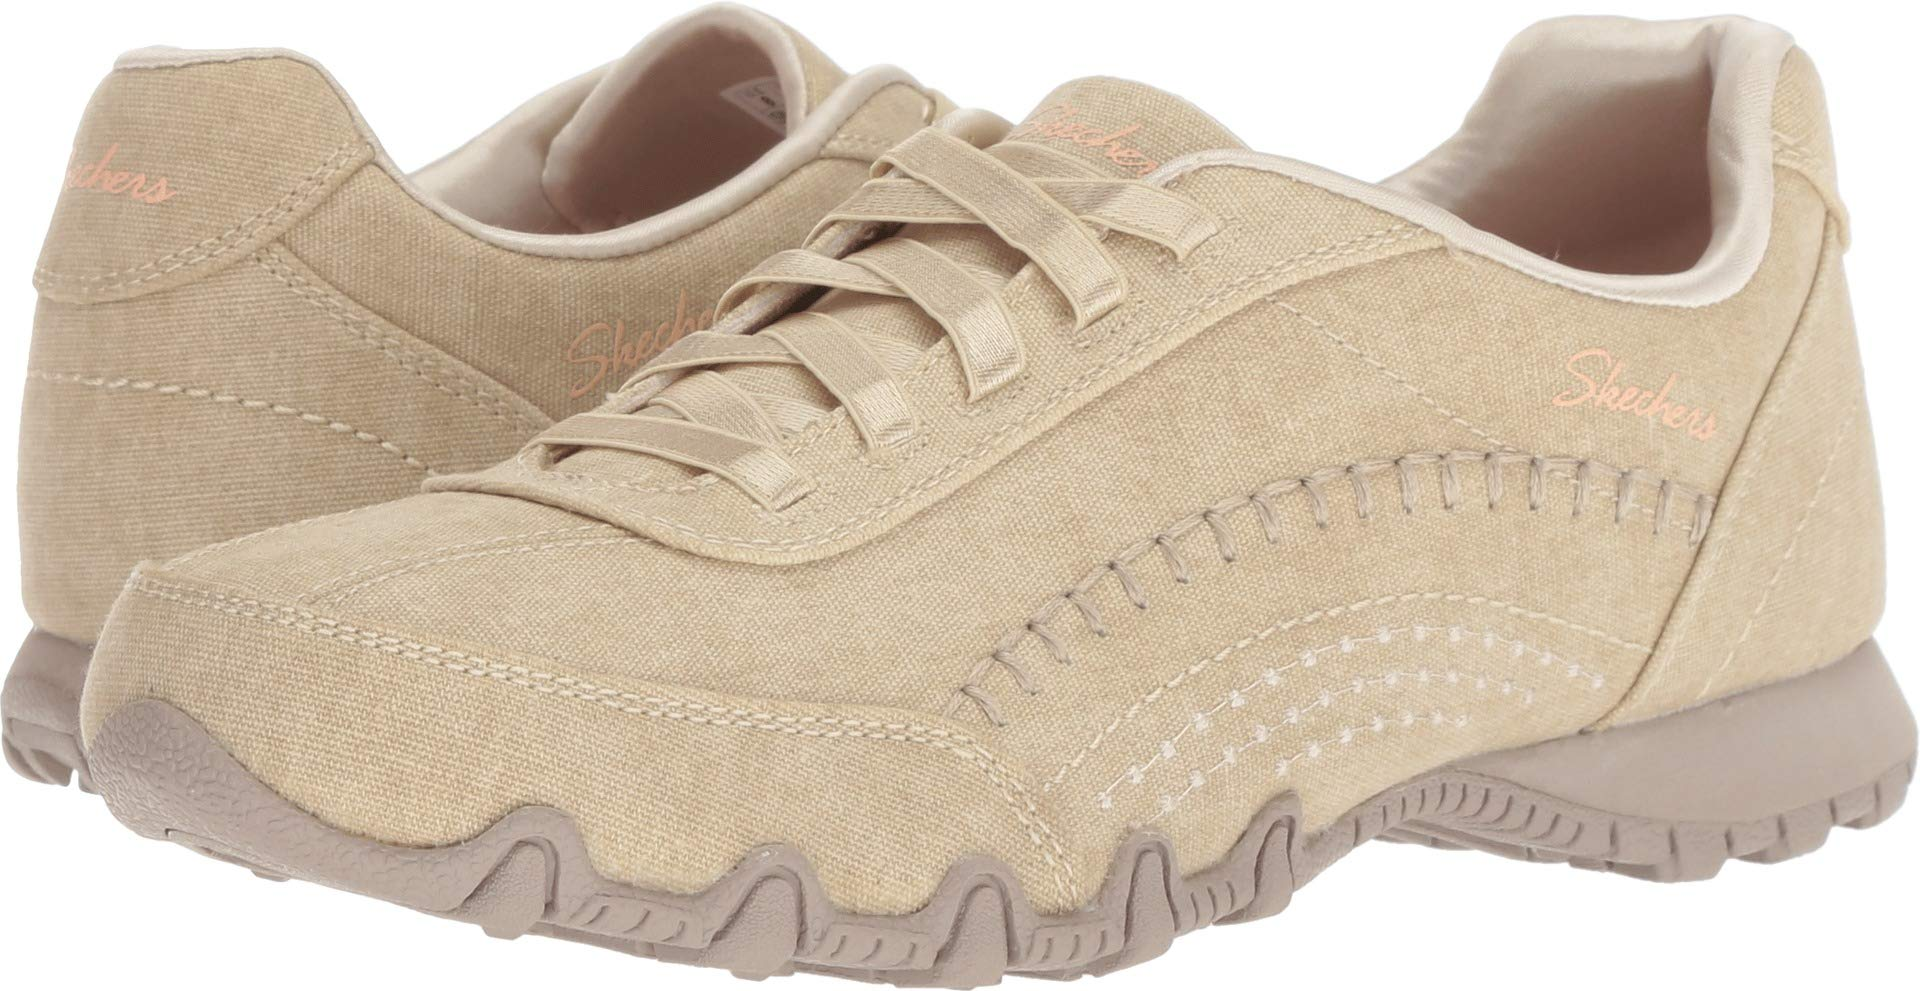 Skechers Relaxed Fit Bikers Layered Womens Slip On Sneakers Natural 8